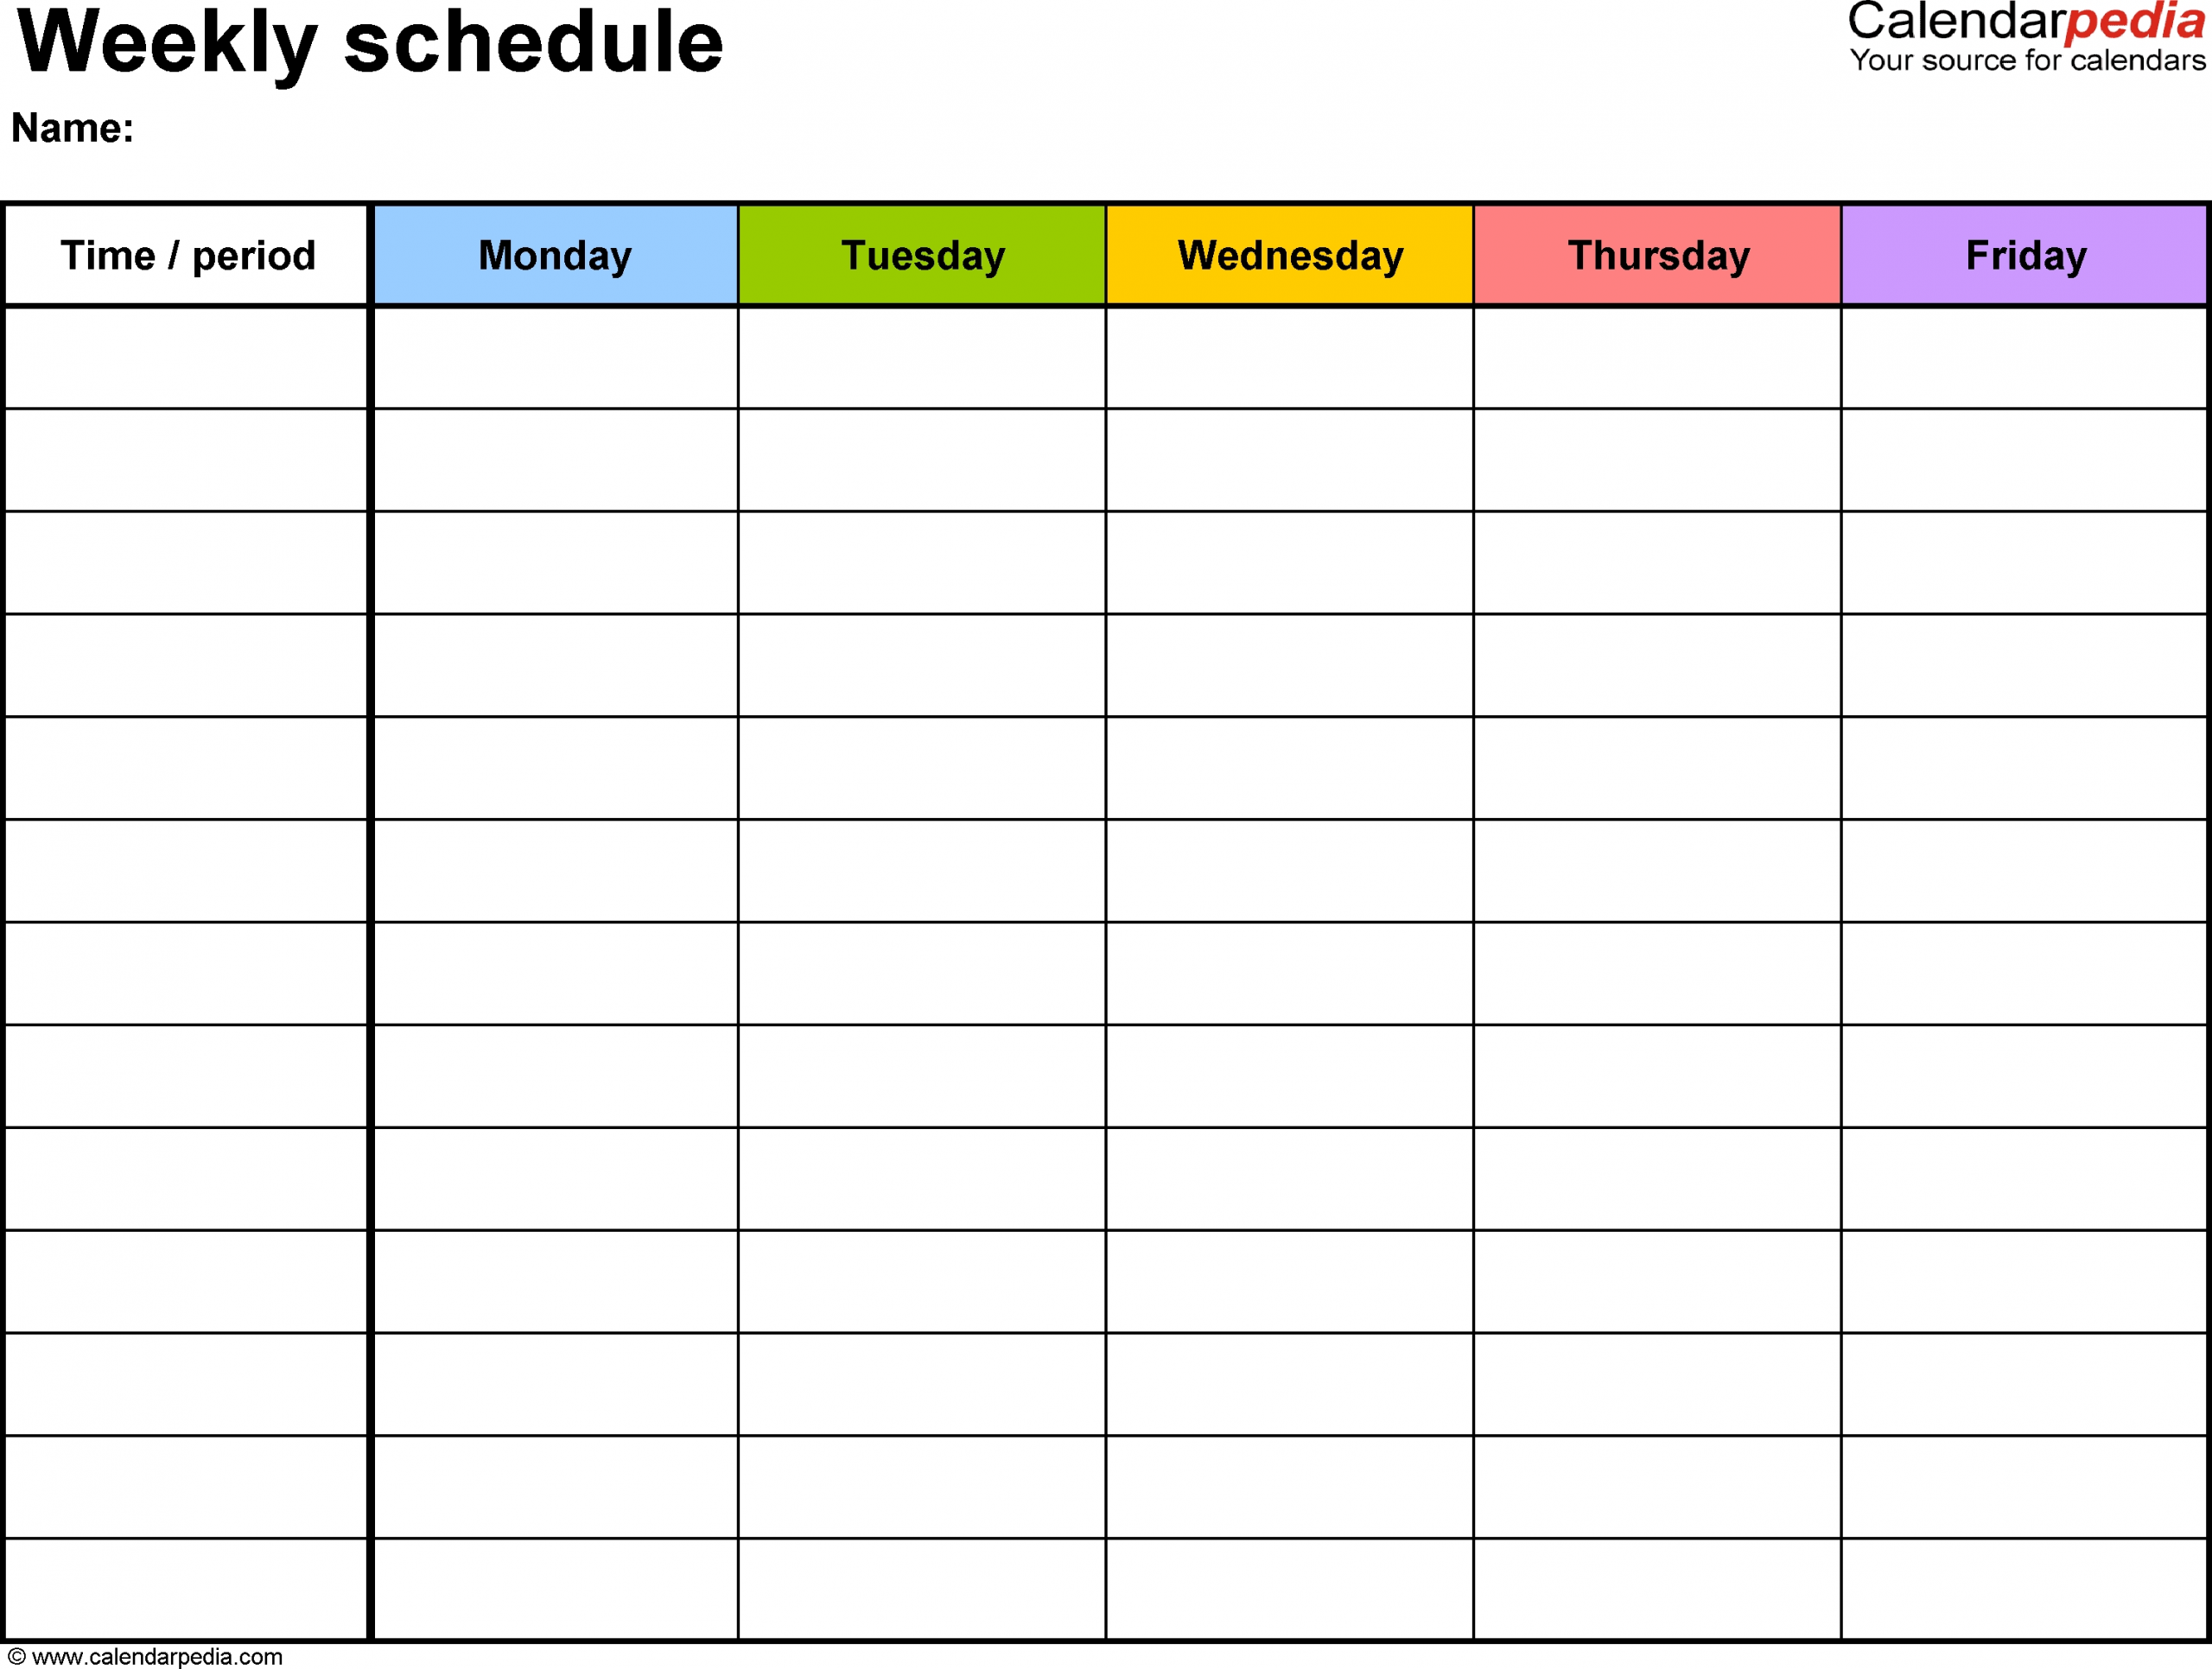 Weekly Schedule Template For Word Version 1: Landscape, 1 with Monsay Through Friday Calneder With Times